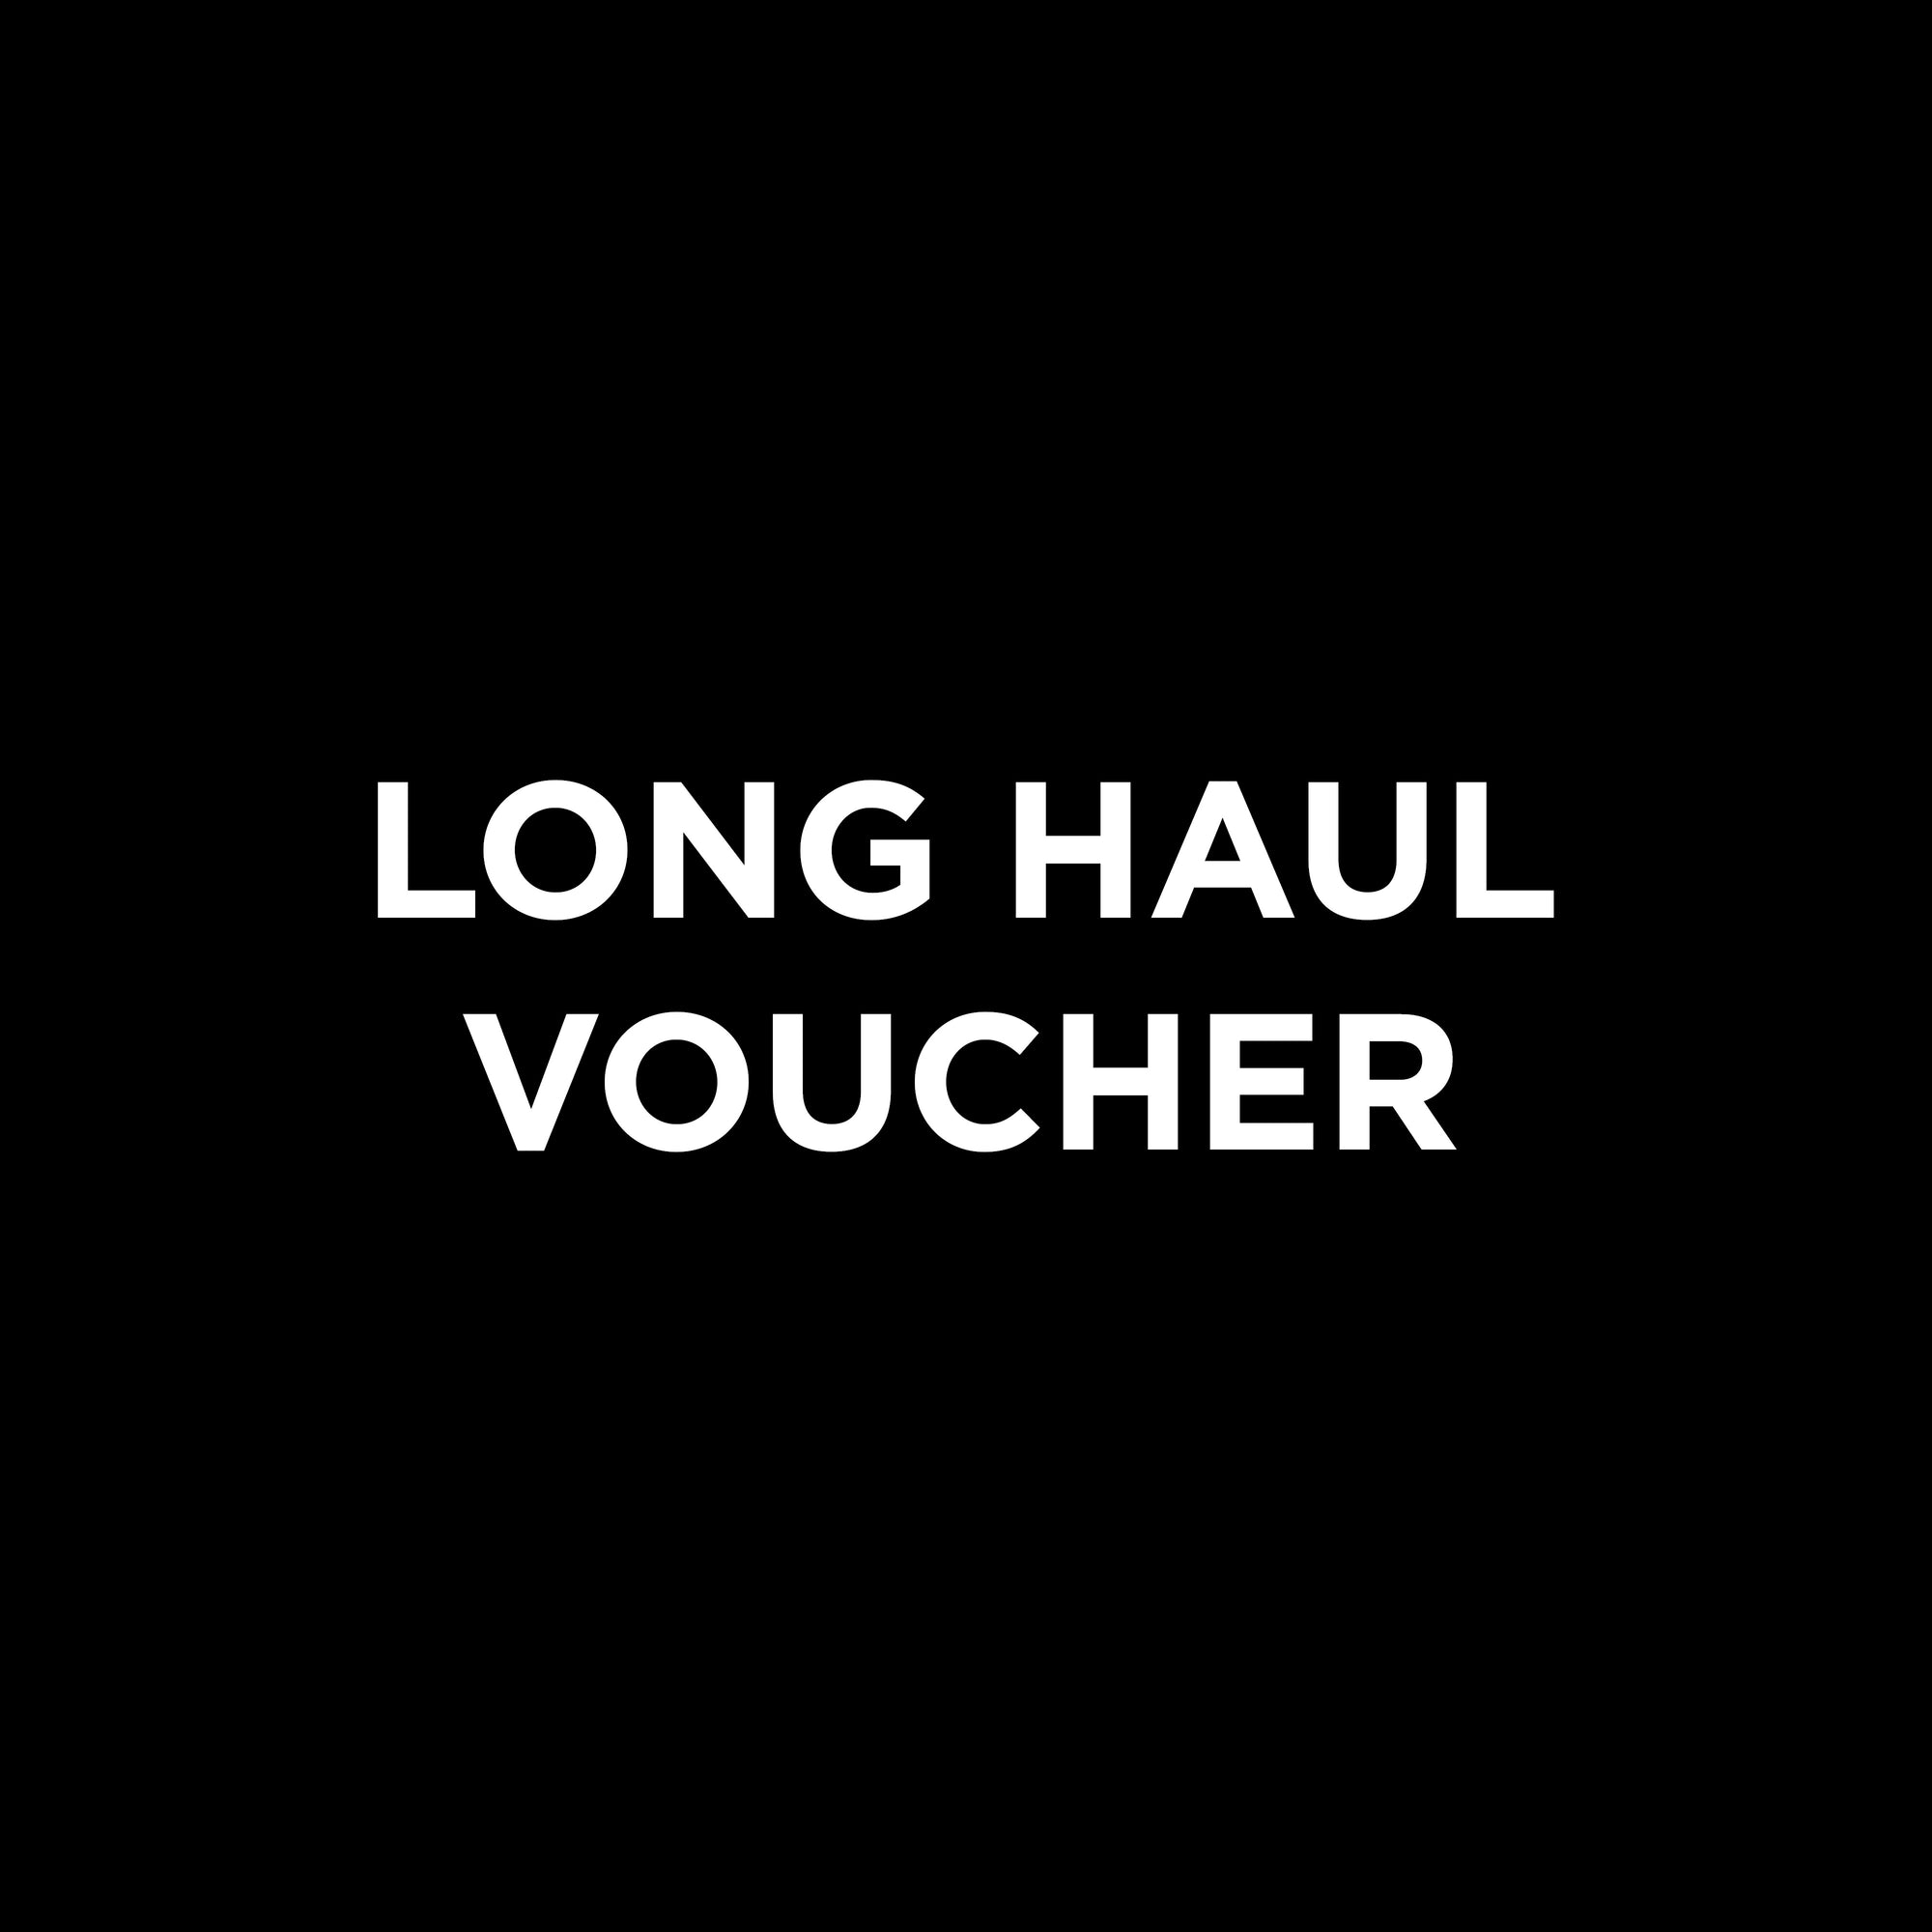 [BATCH II] Long Haul Voucher